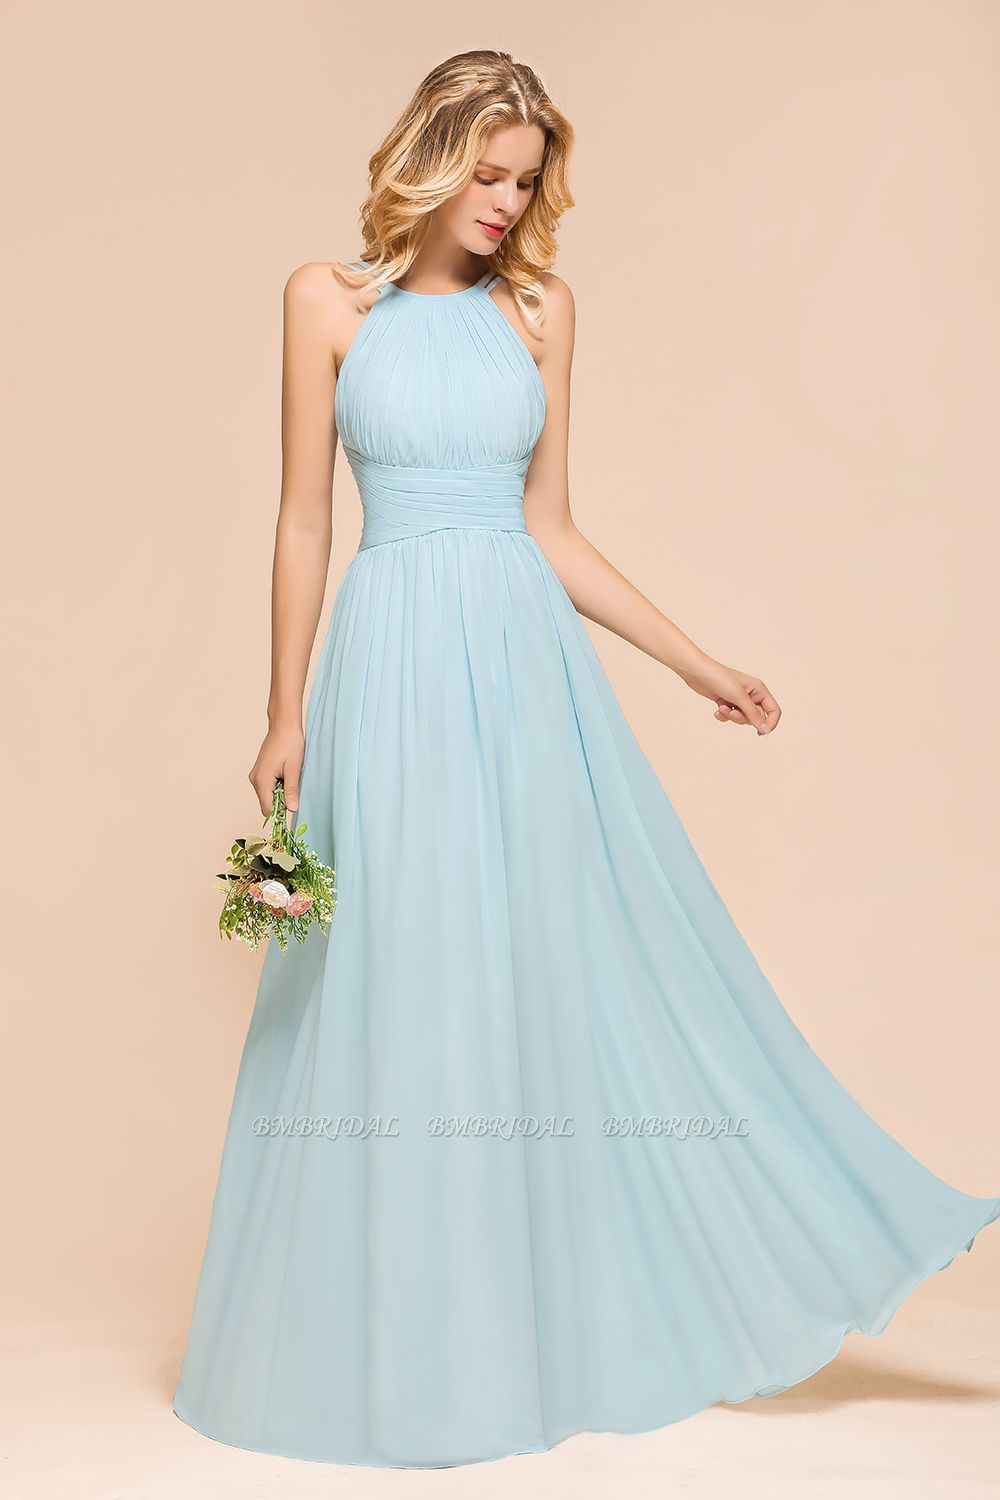 Gorgeous Halter Ruffle Sky Blue Affordable Bridesmaid Dress